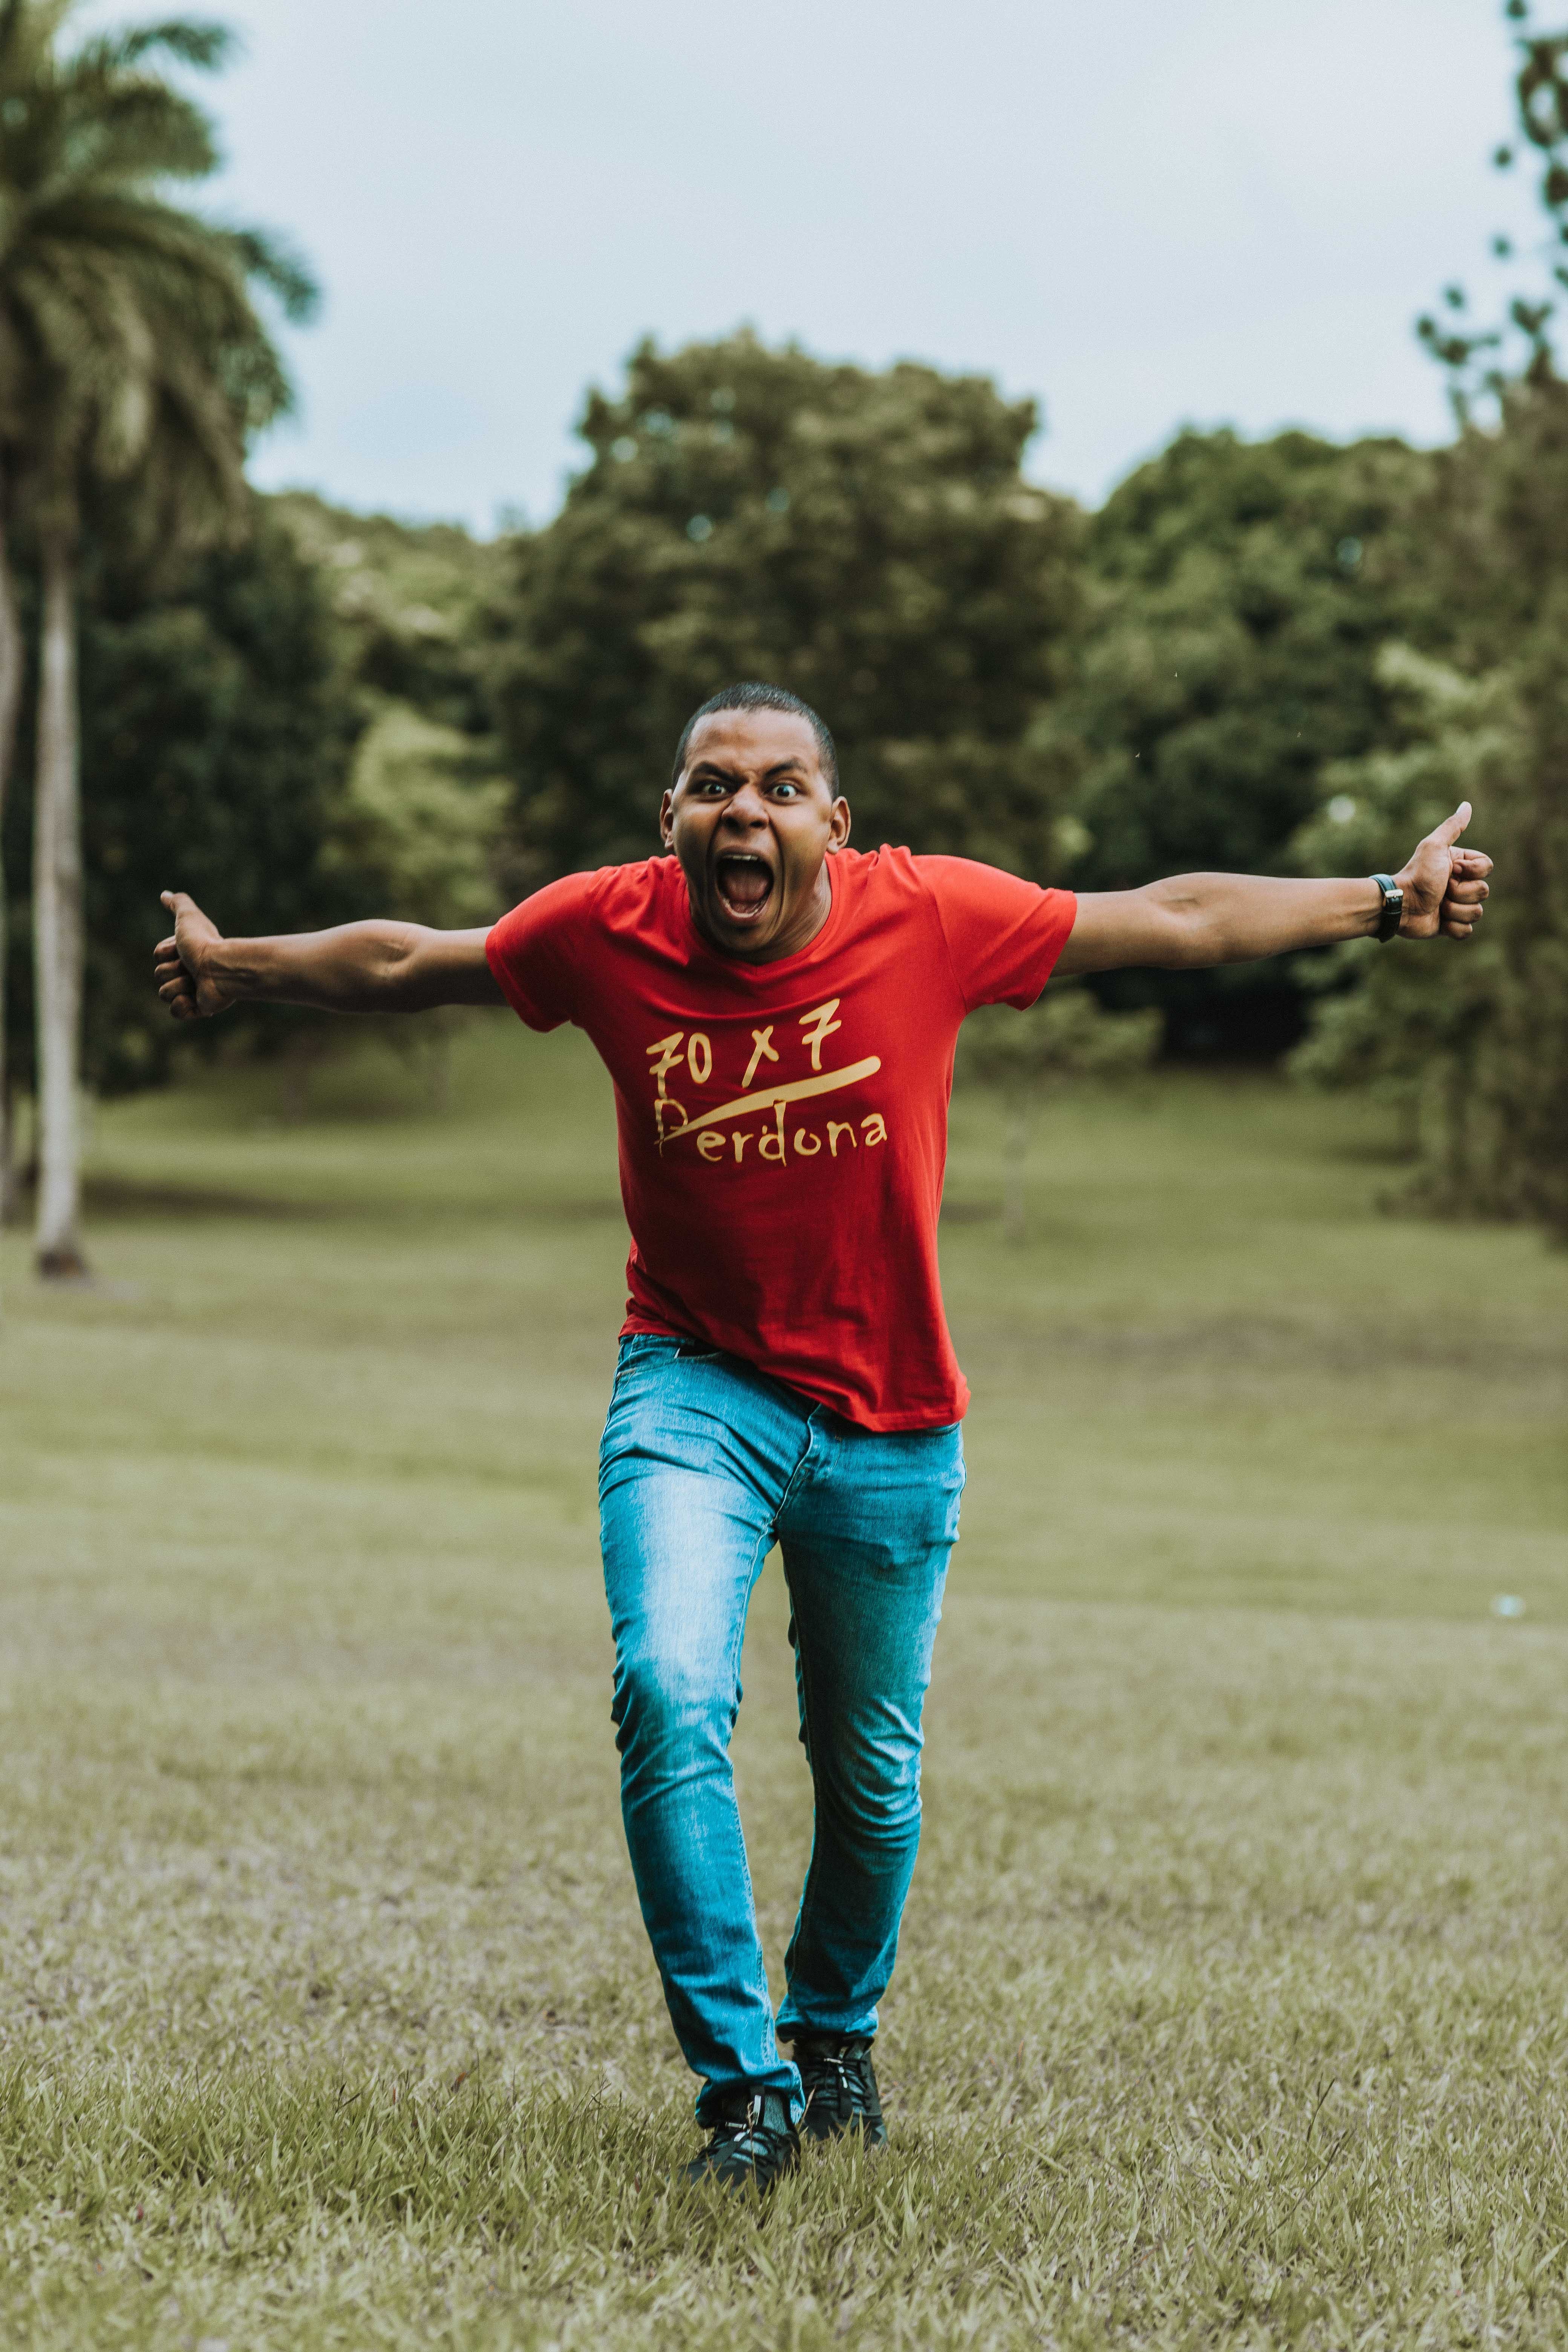 Man wearing red t-shirt and blue jeans Running on Grass